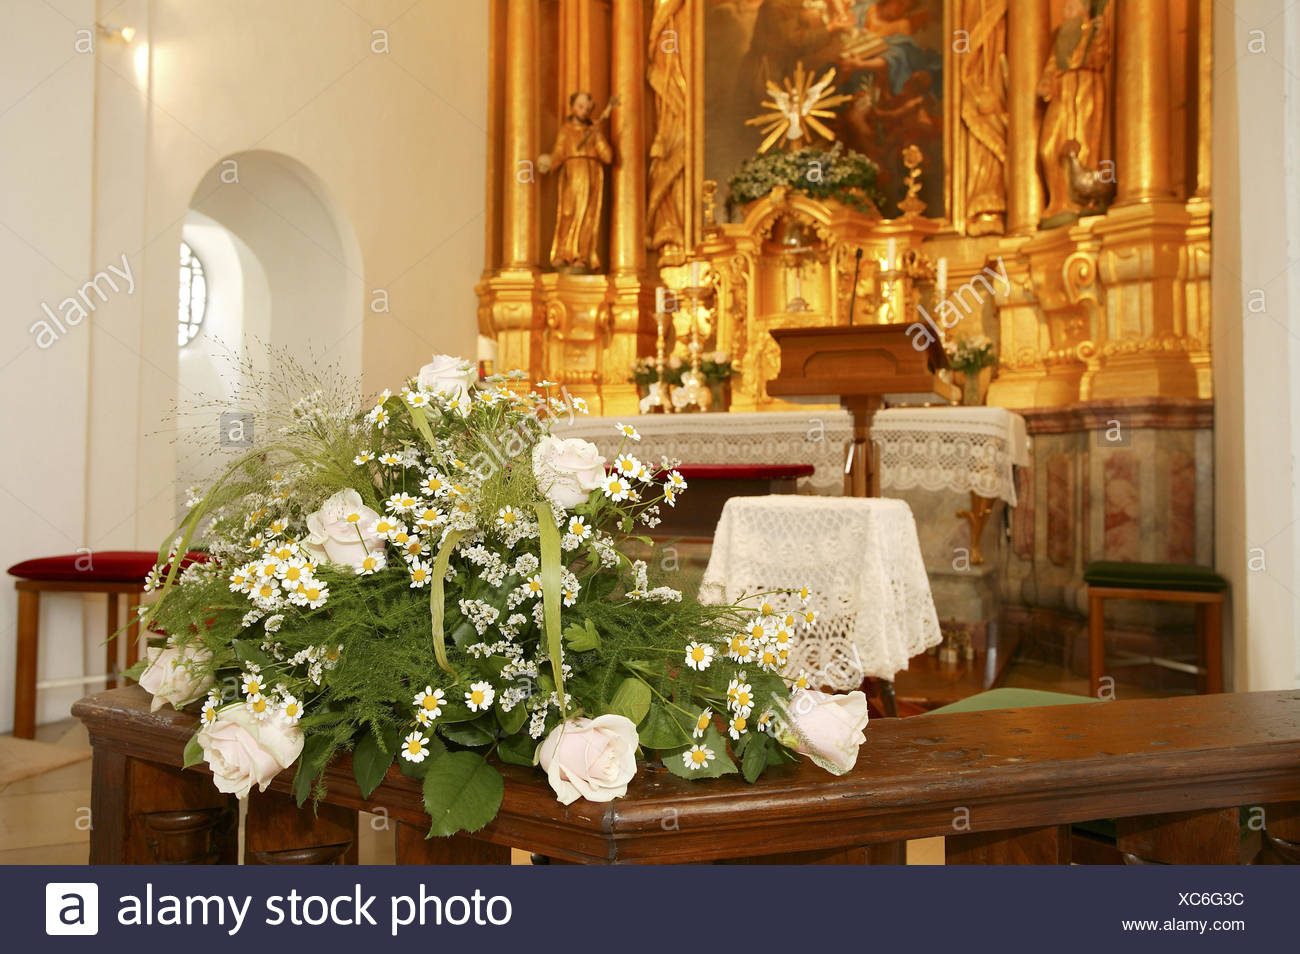 Wedding Church Altar Flower Arrangement Stock Photo Alamy